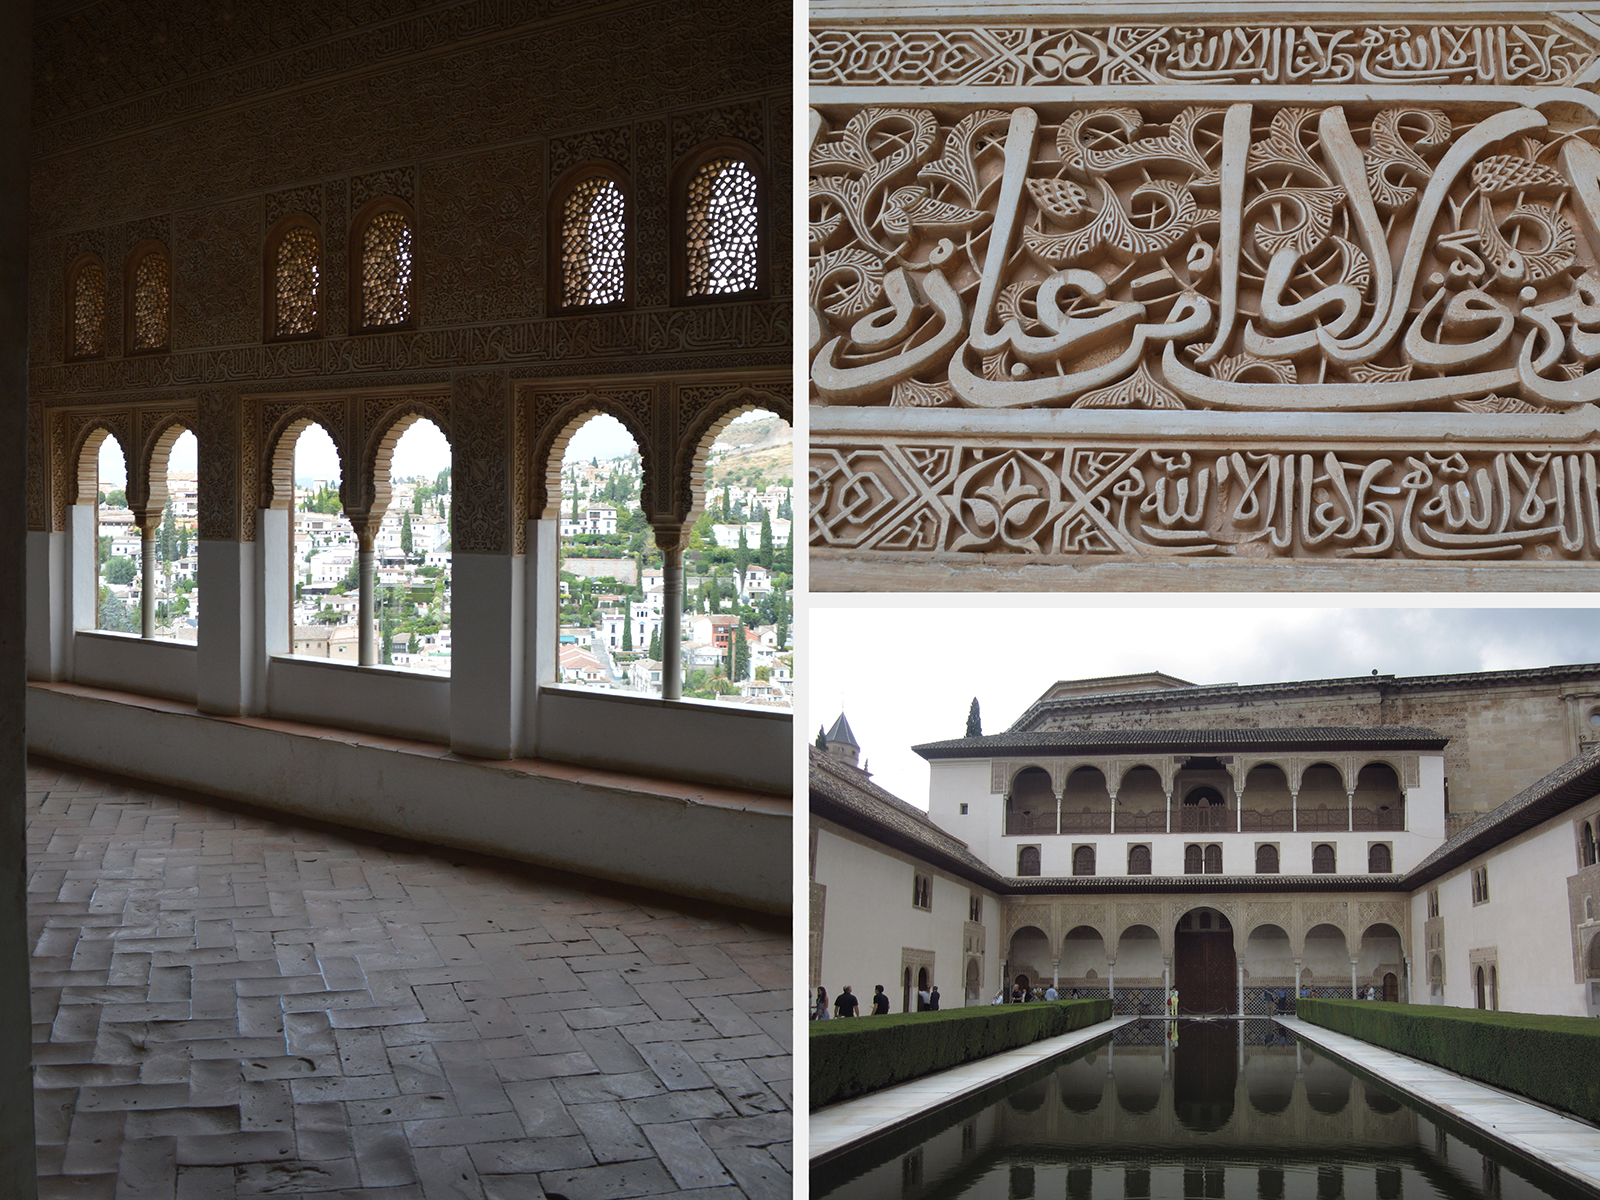 The Alhambra Palace   p  hoto bottom right: Antonia Reed-Felstead